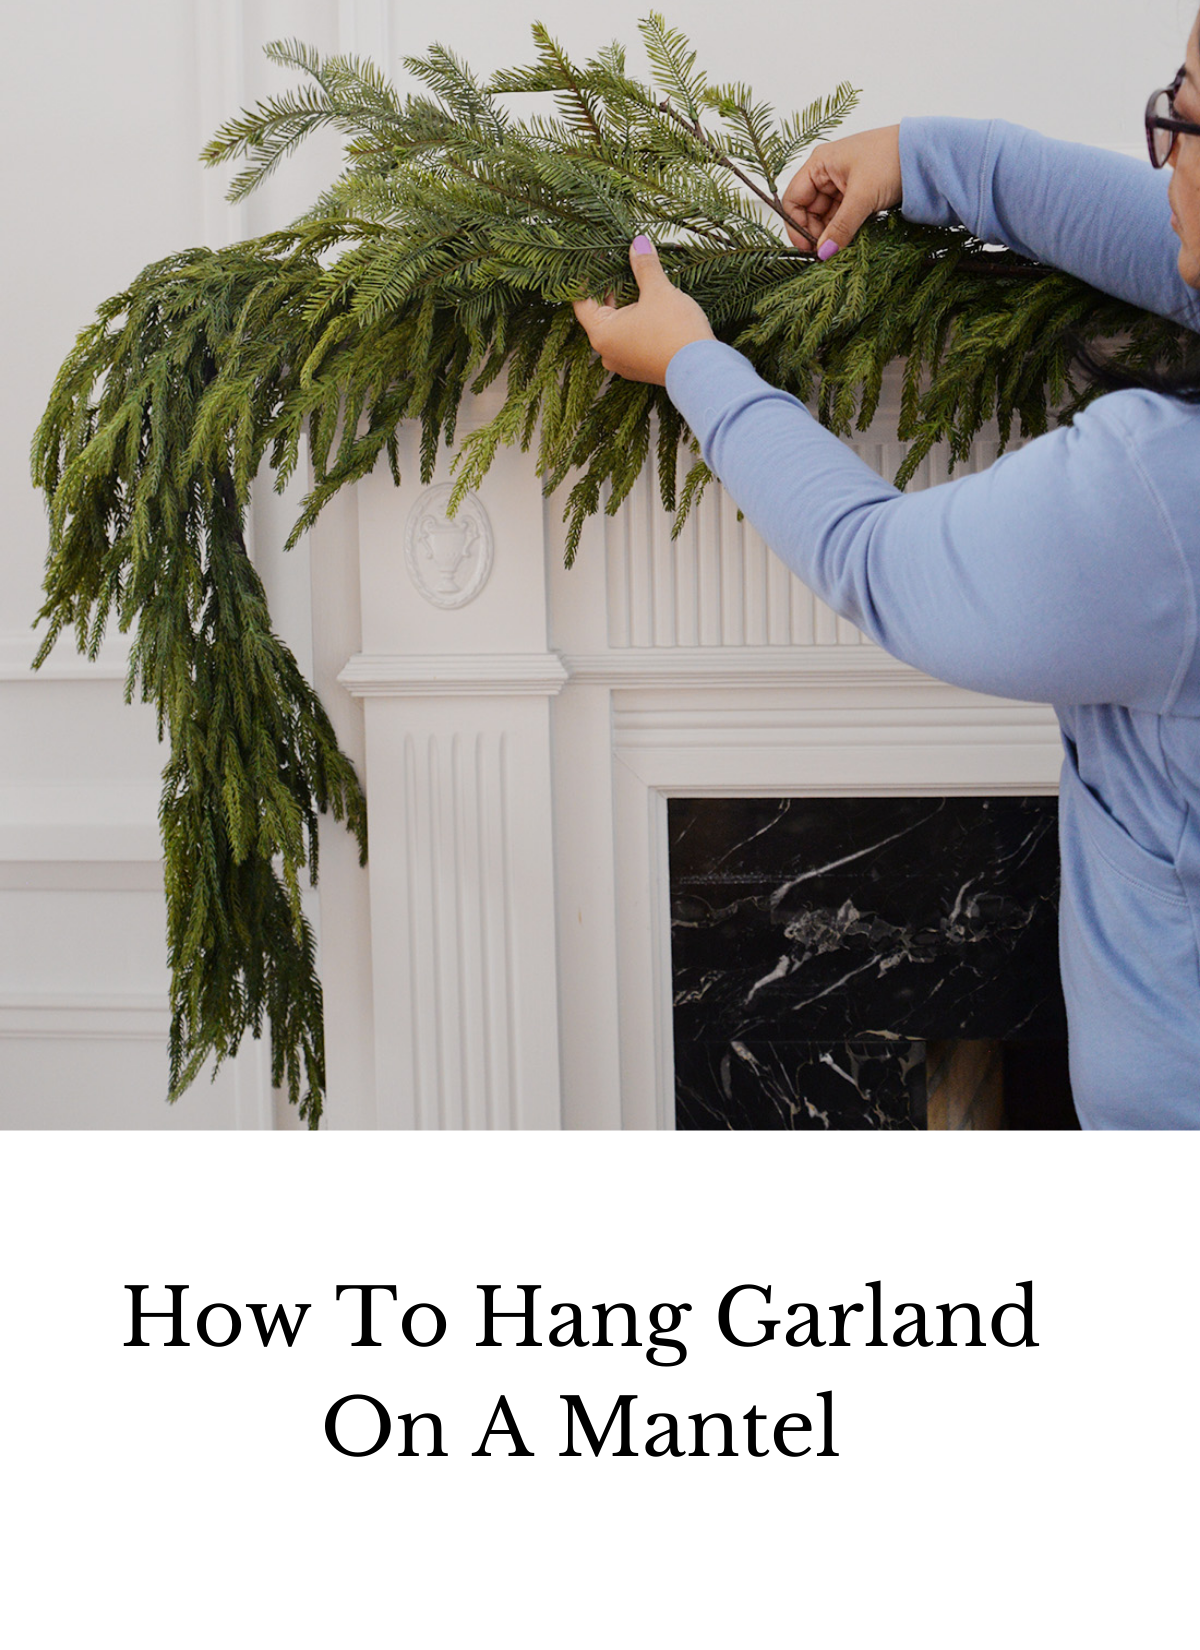 how to hang garland on a mantel, how to hang garland on a mantle